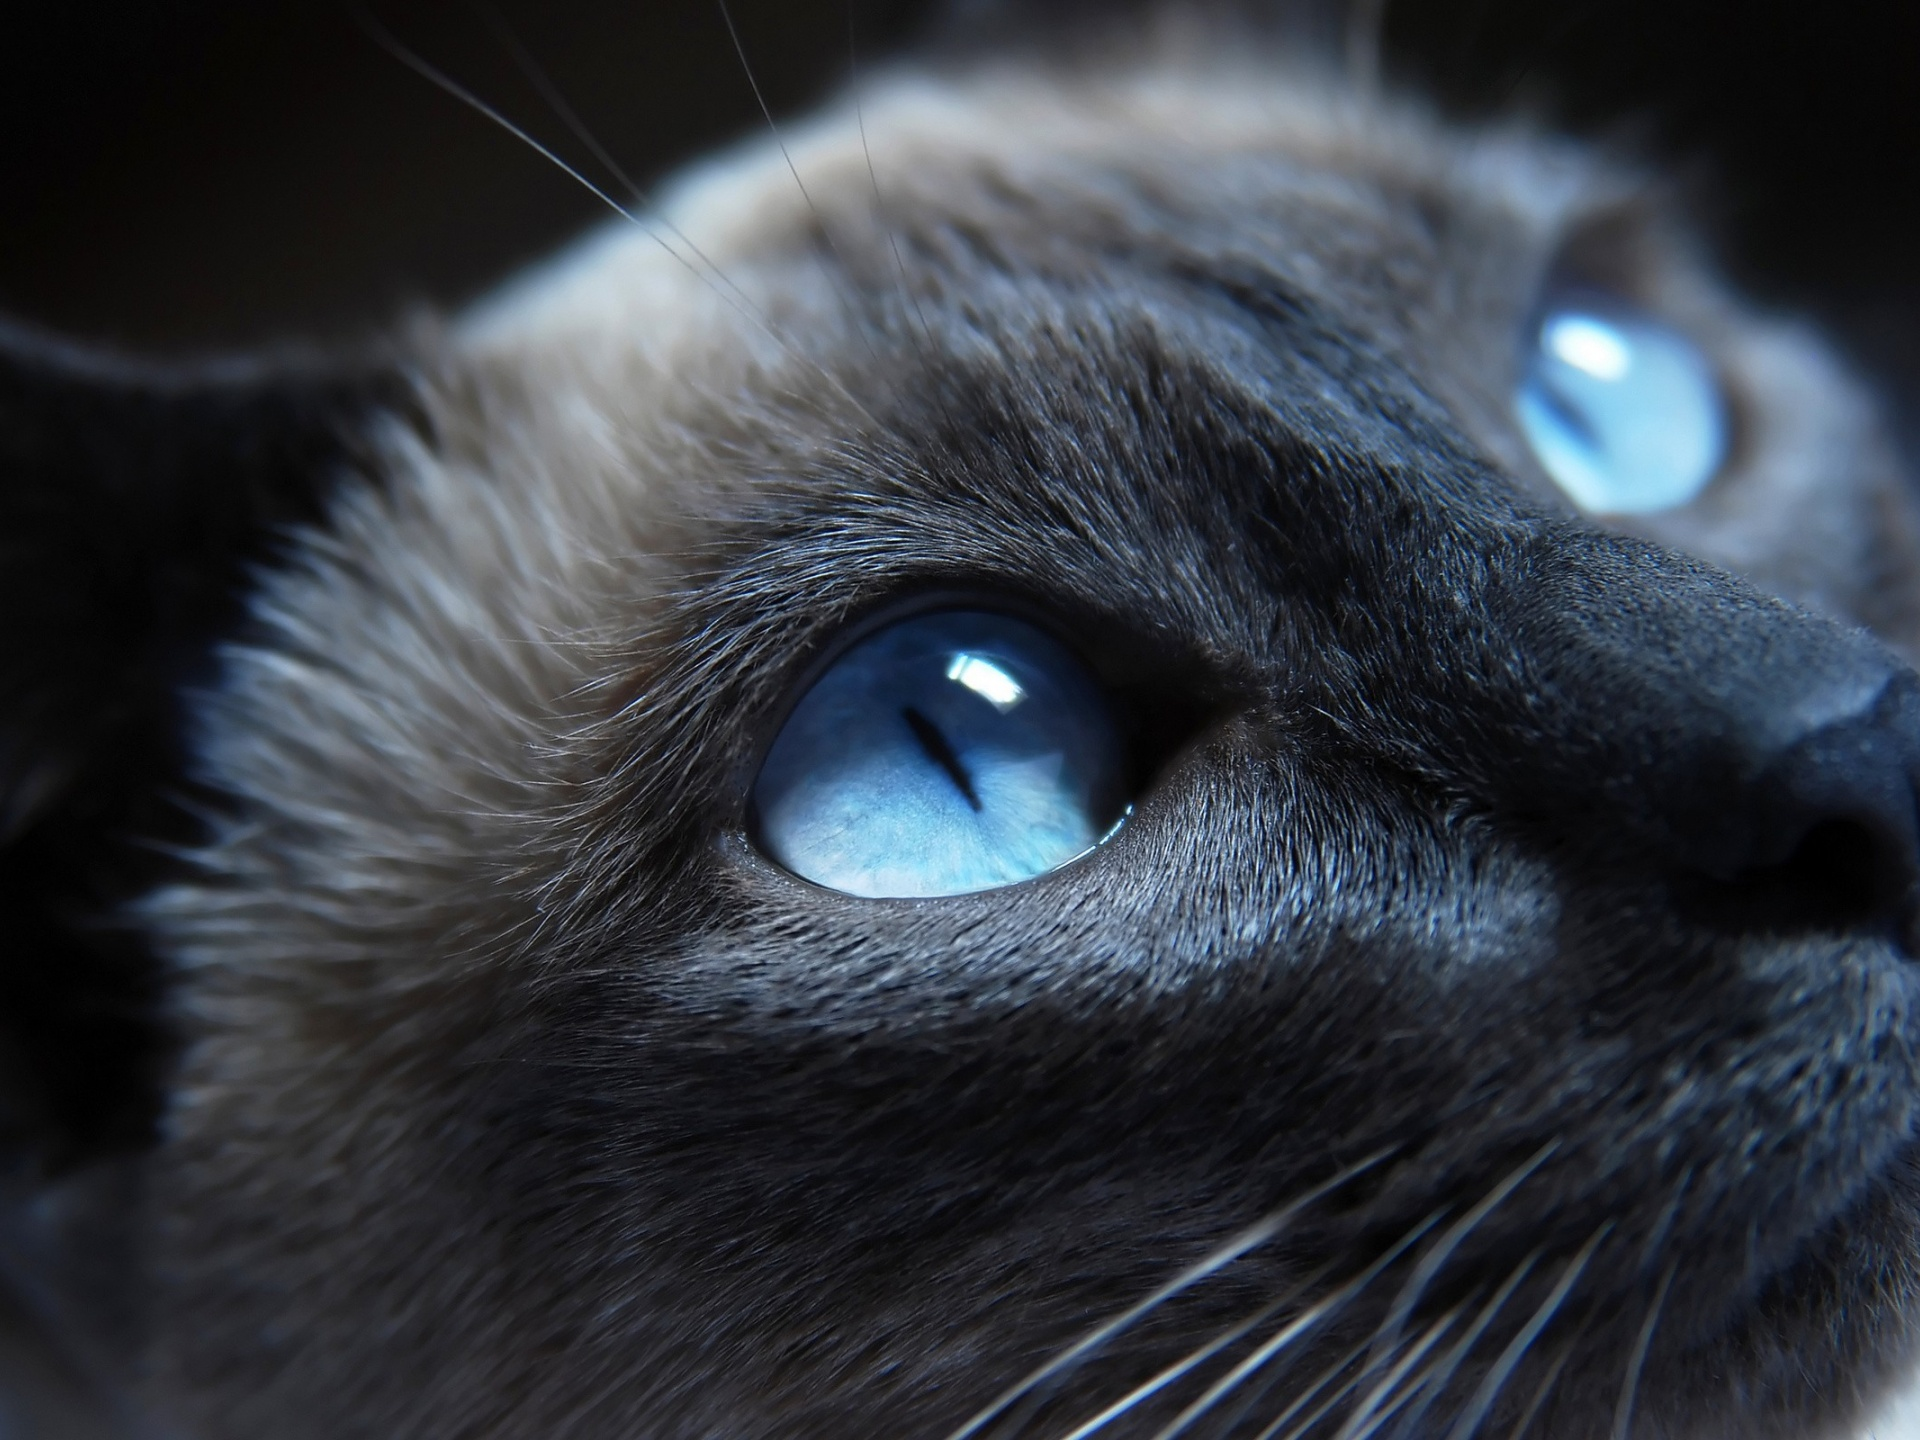 click to free download the wallpaper--Cute Kitty Image, Blue Eyes, Face Portrait, is Lovely and Impressive 1920X1440 free wallpaper download